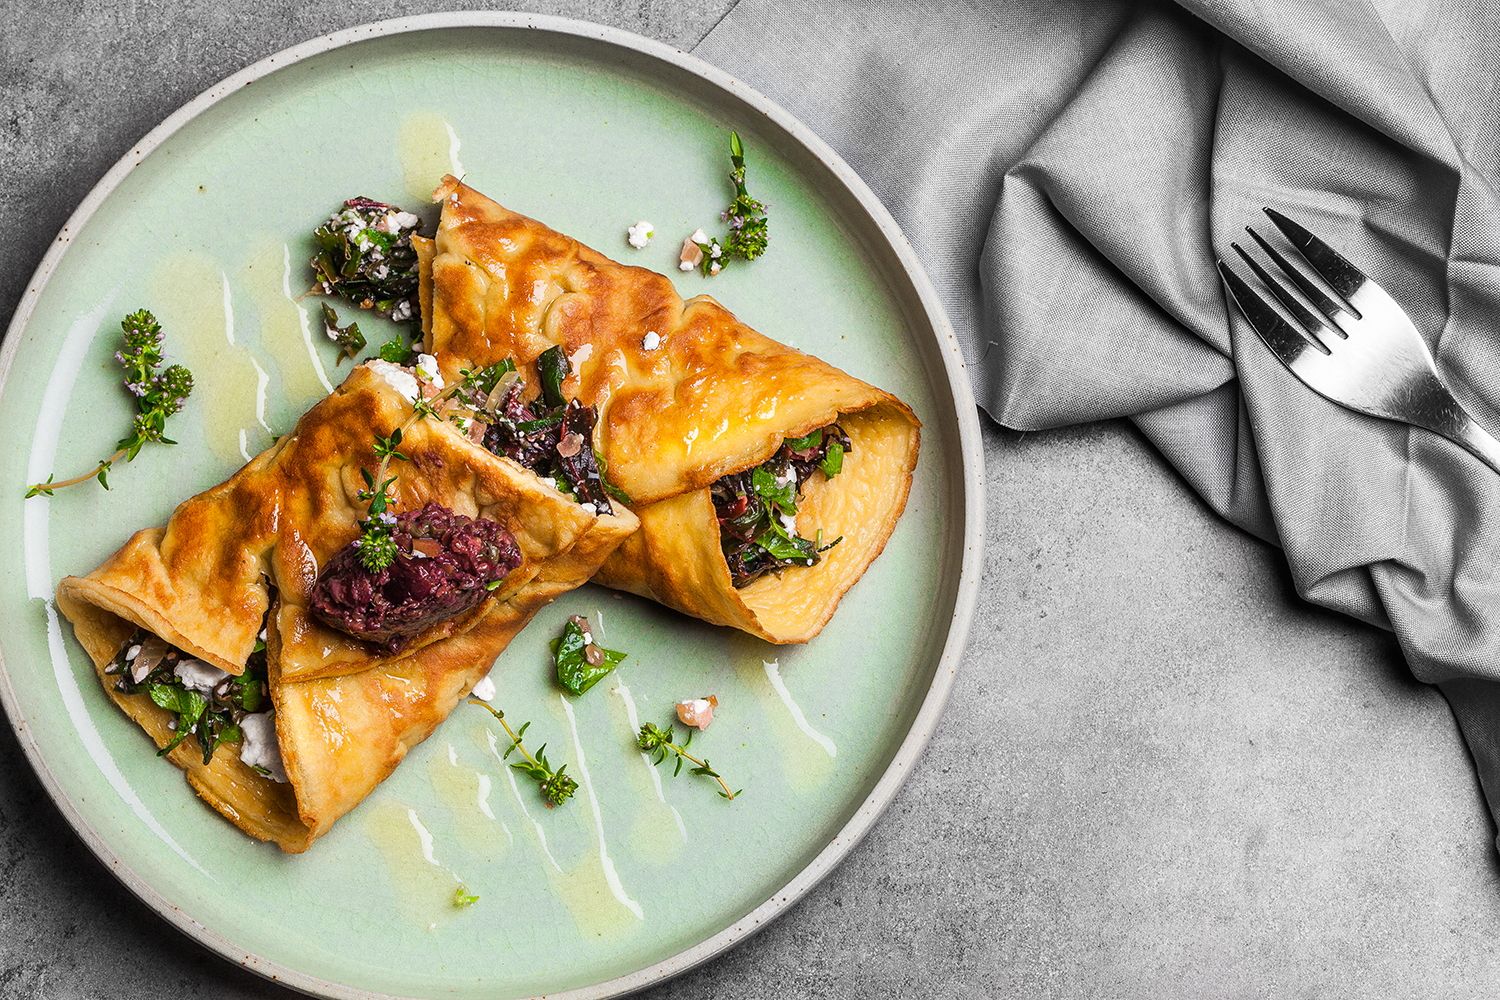 Olive oil egg roll w seasonal greens, feta and black olive tapenade. Recipe and styling by  Cle-ann , photo by  Hugh Adams .